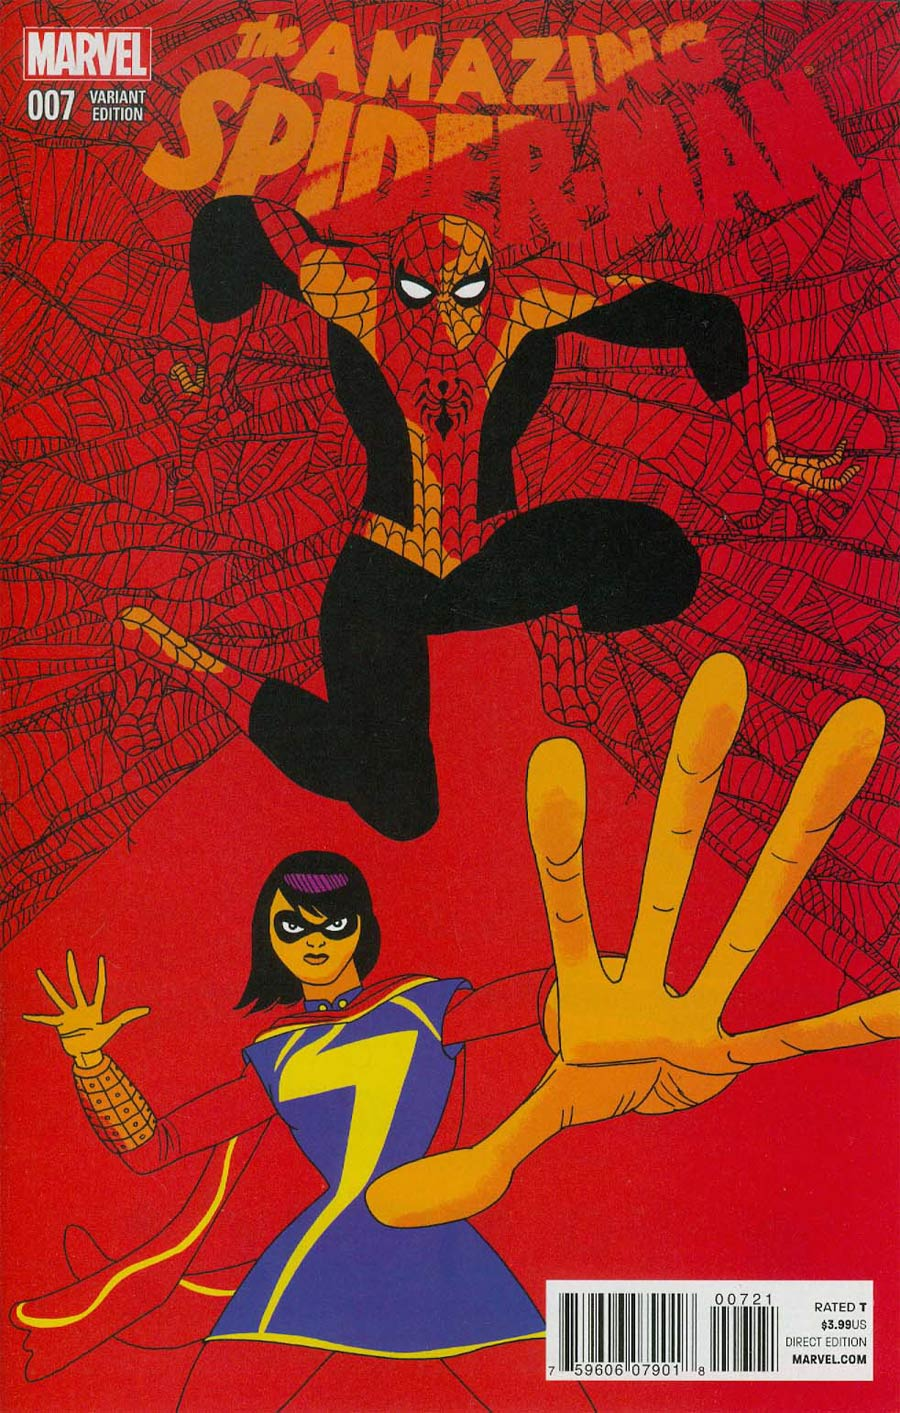 Amazing Spider-Man Vol 3 #7 Cover D Incentive Brian Pulido Variant Cover (Edge Of Spider-Verse Tie-In)